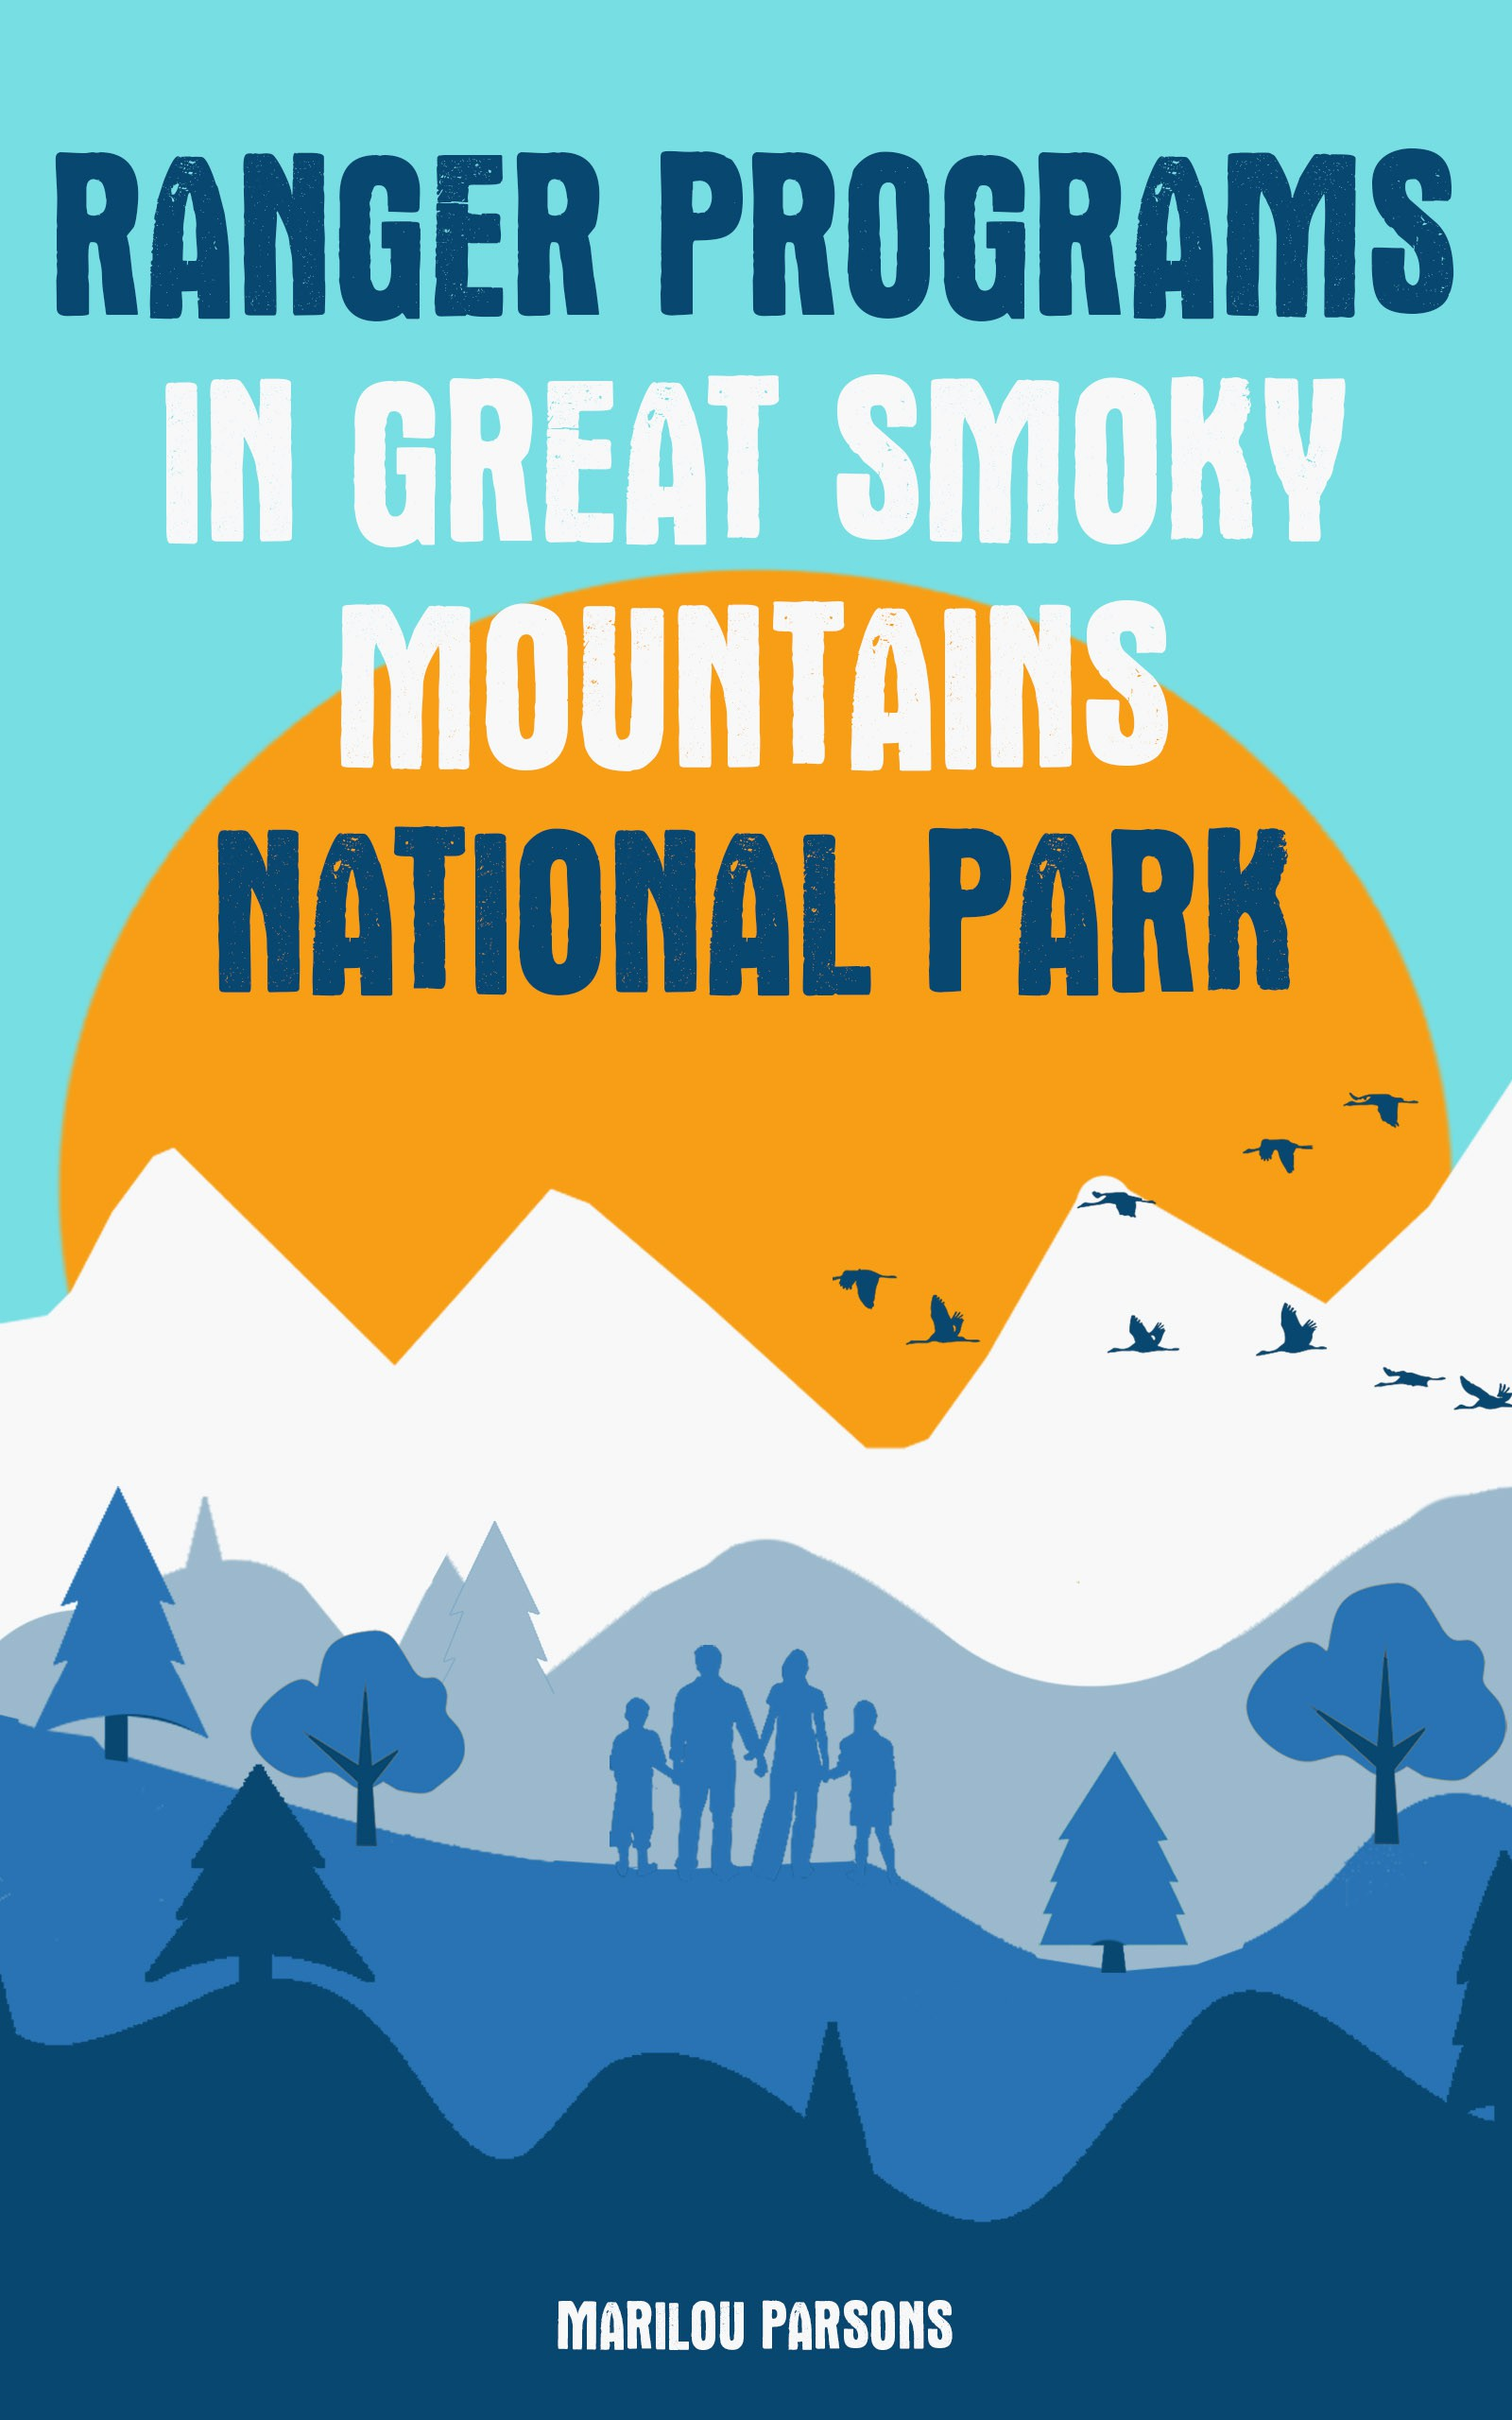 I need an ebook cover for a book pertaining to Great Smoky Mountains National Park.